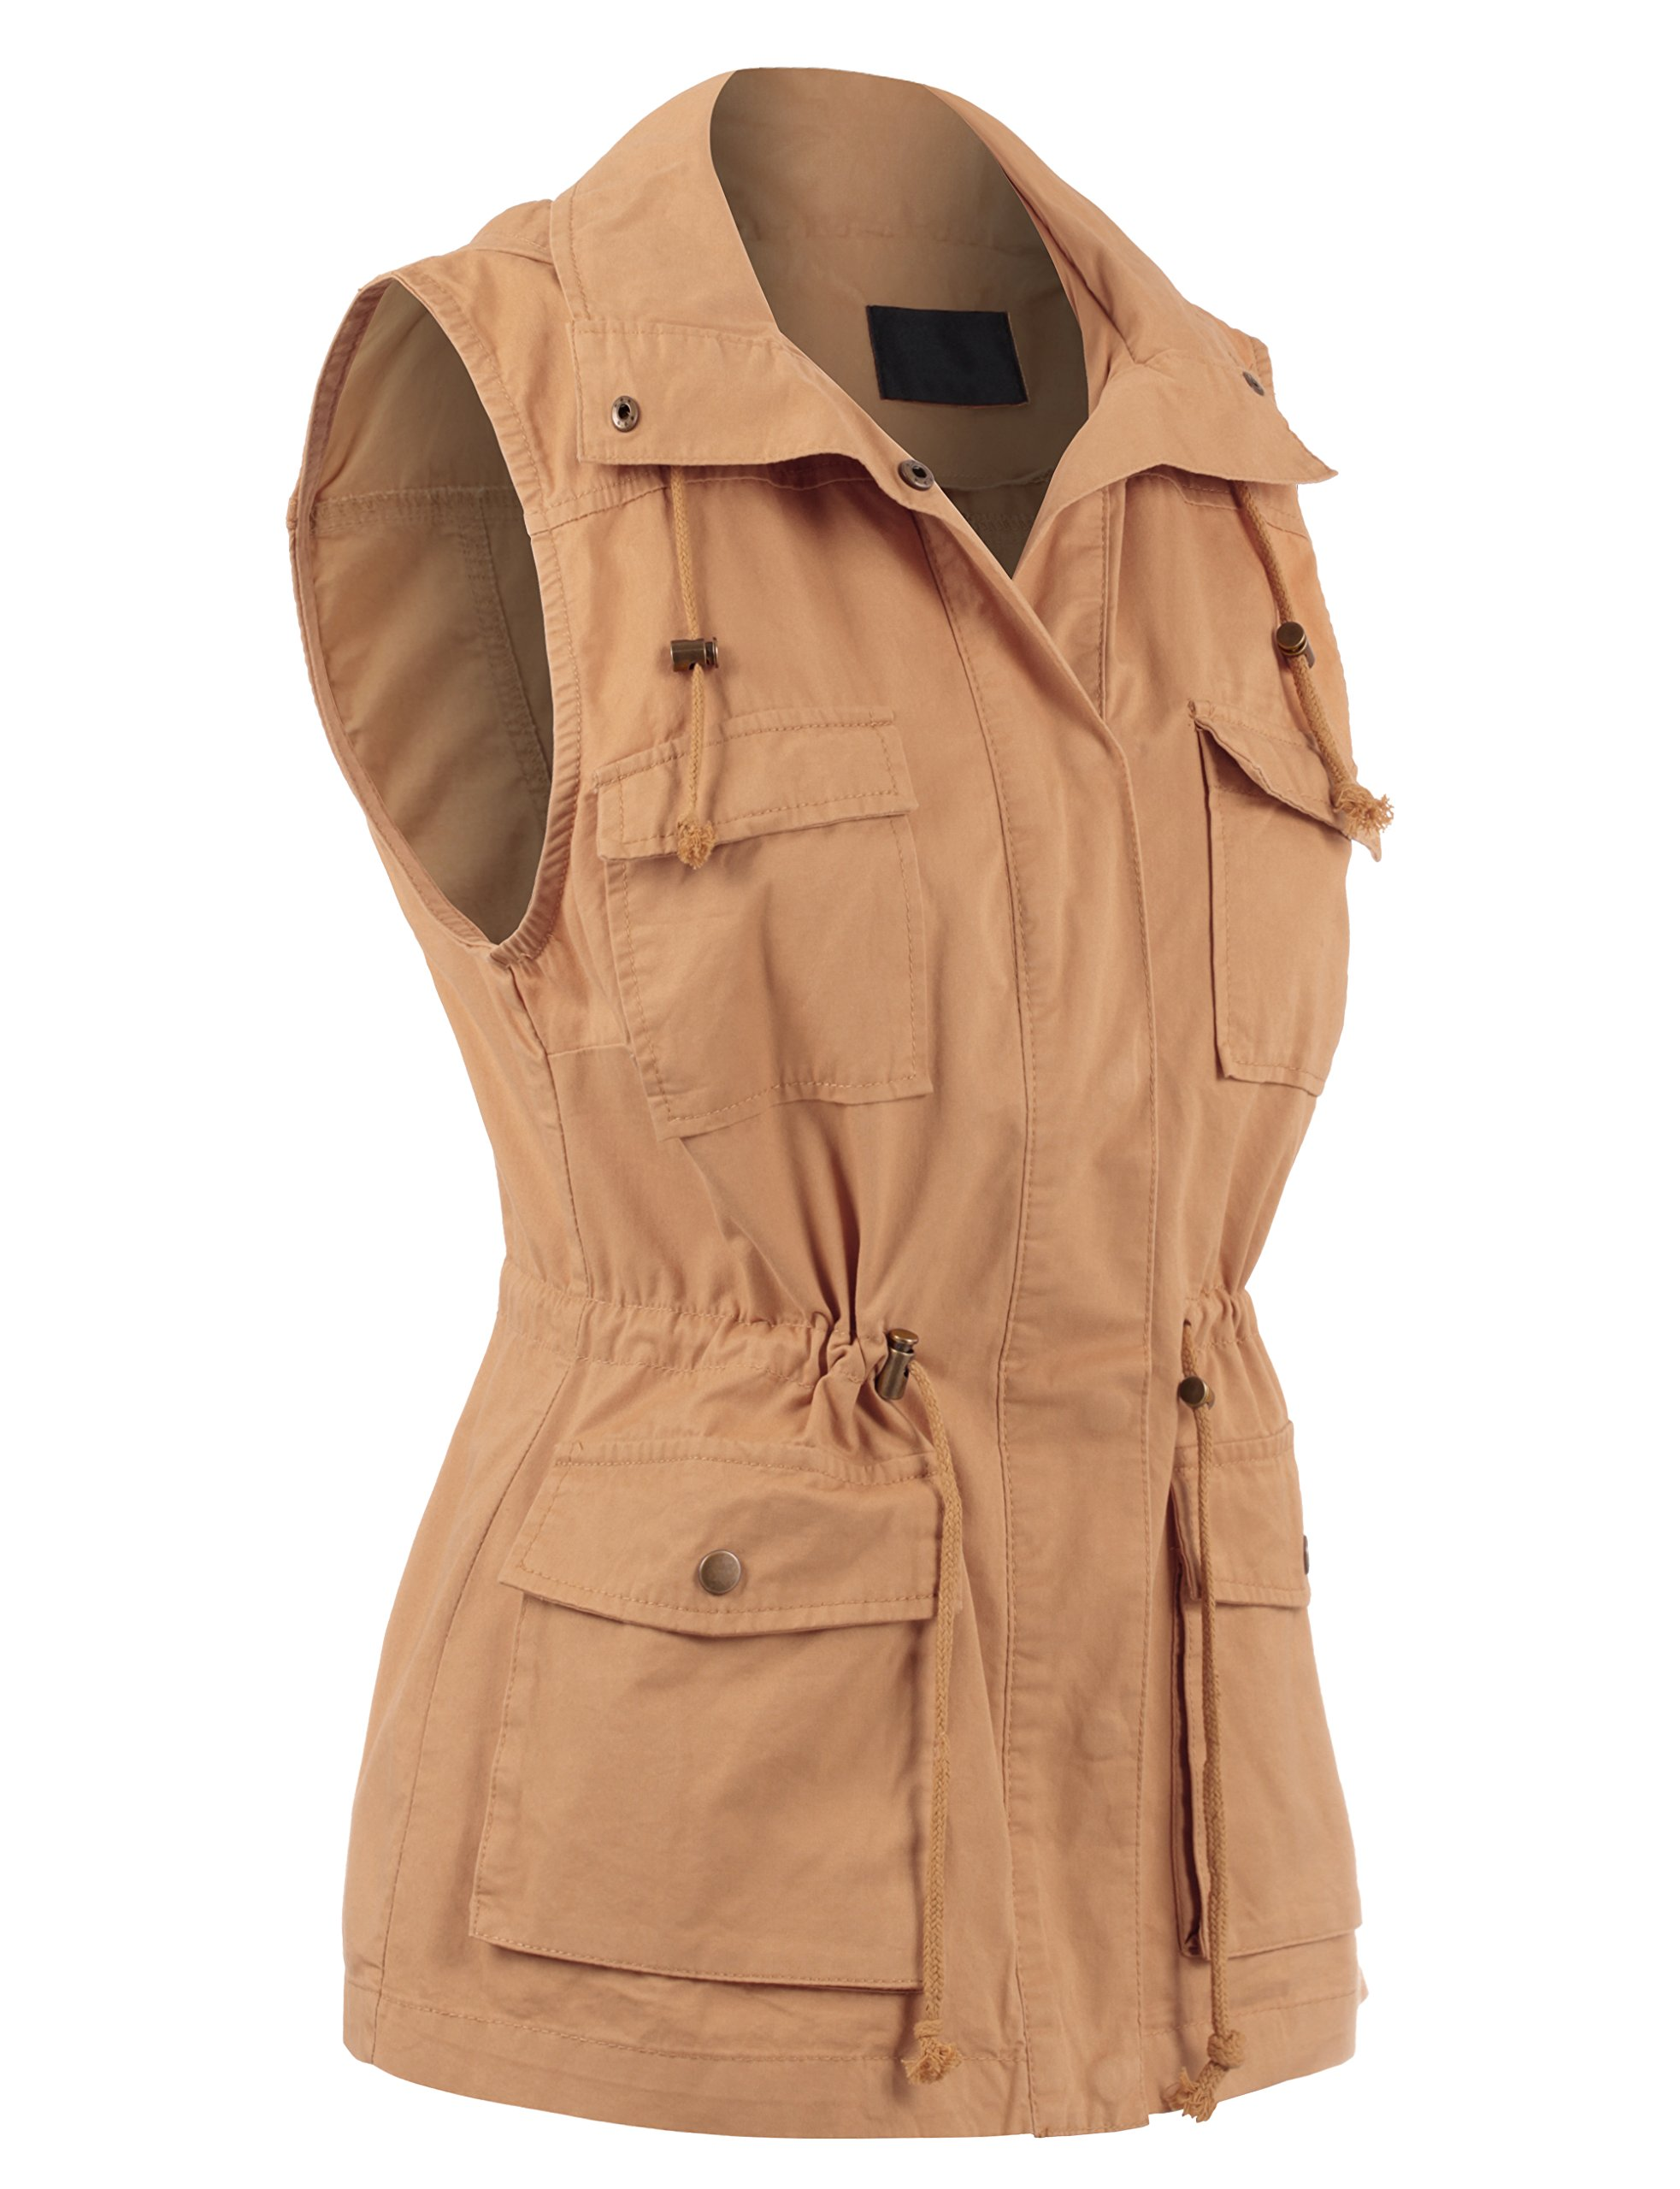 BEKTOME Womens Solid Sleeveless Military Anorak Utility Vest-M-Taupe